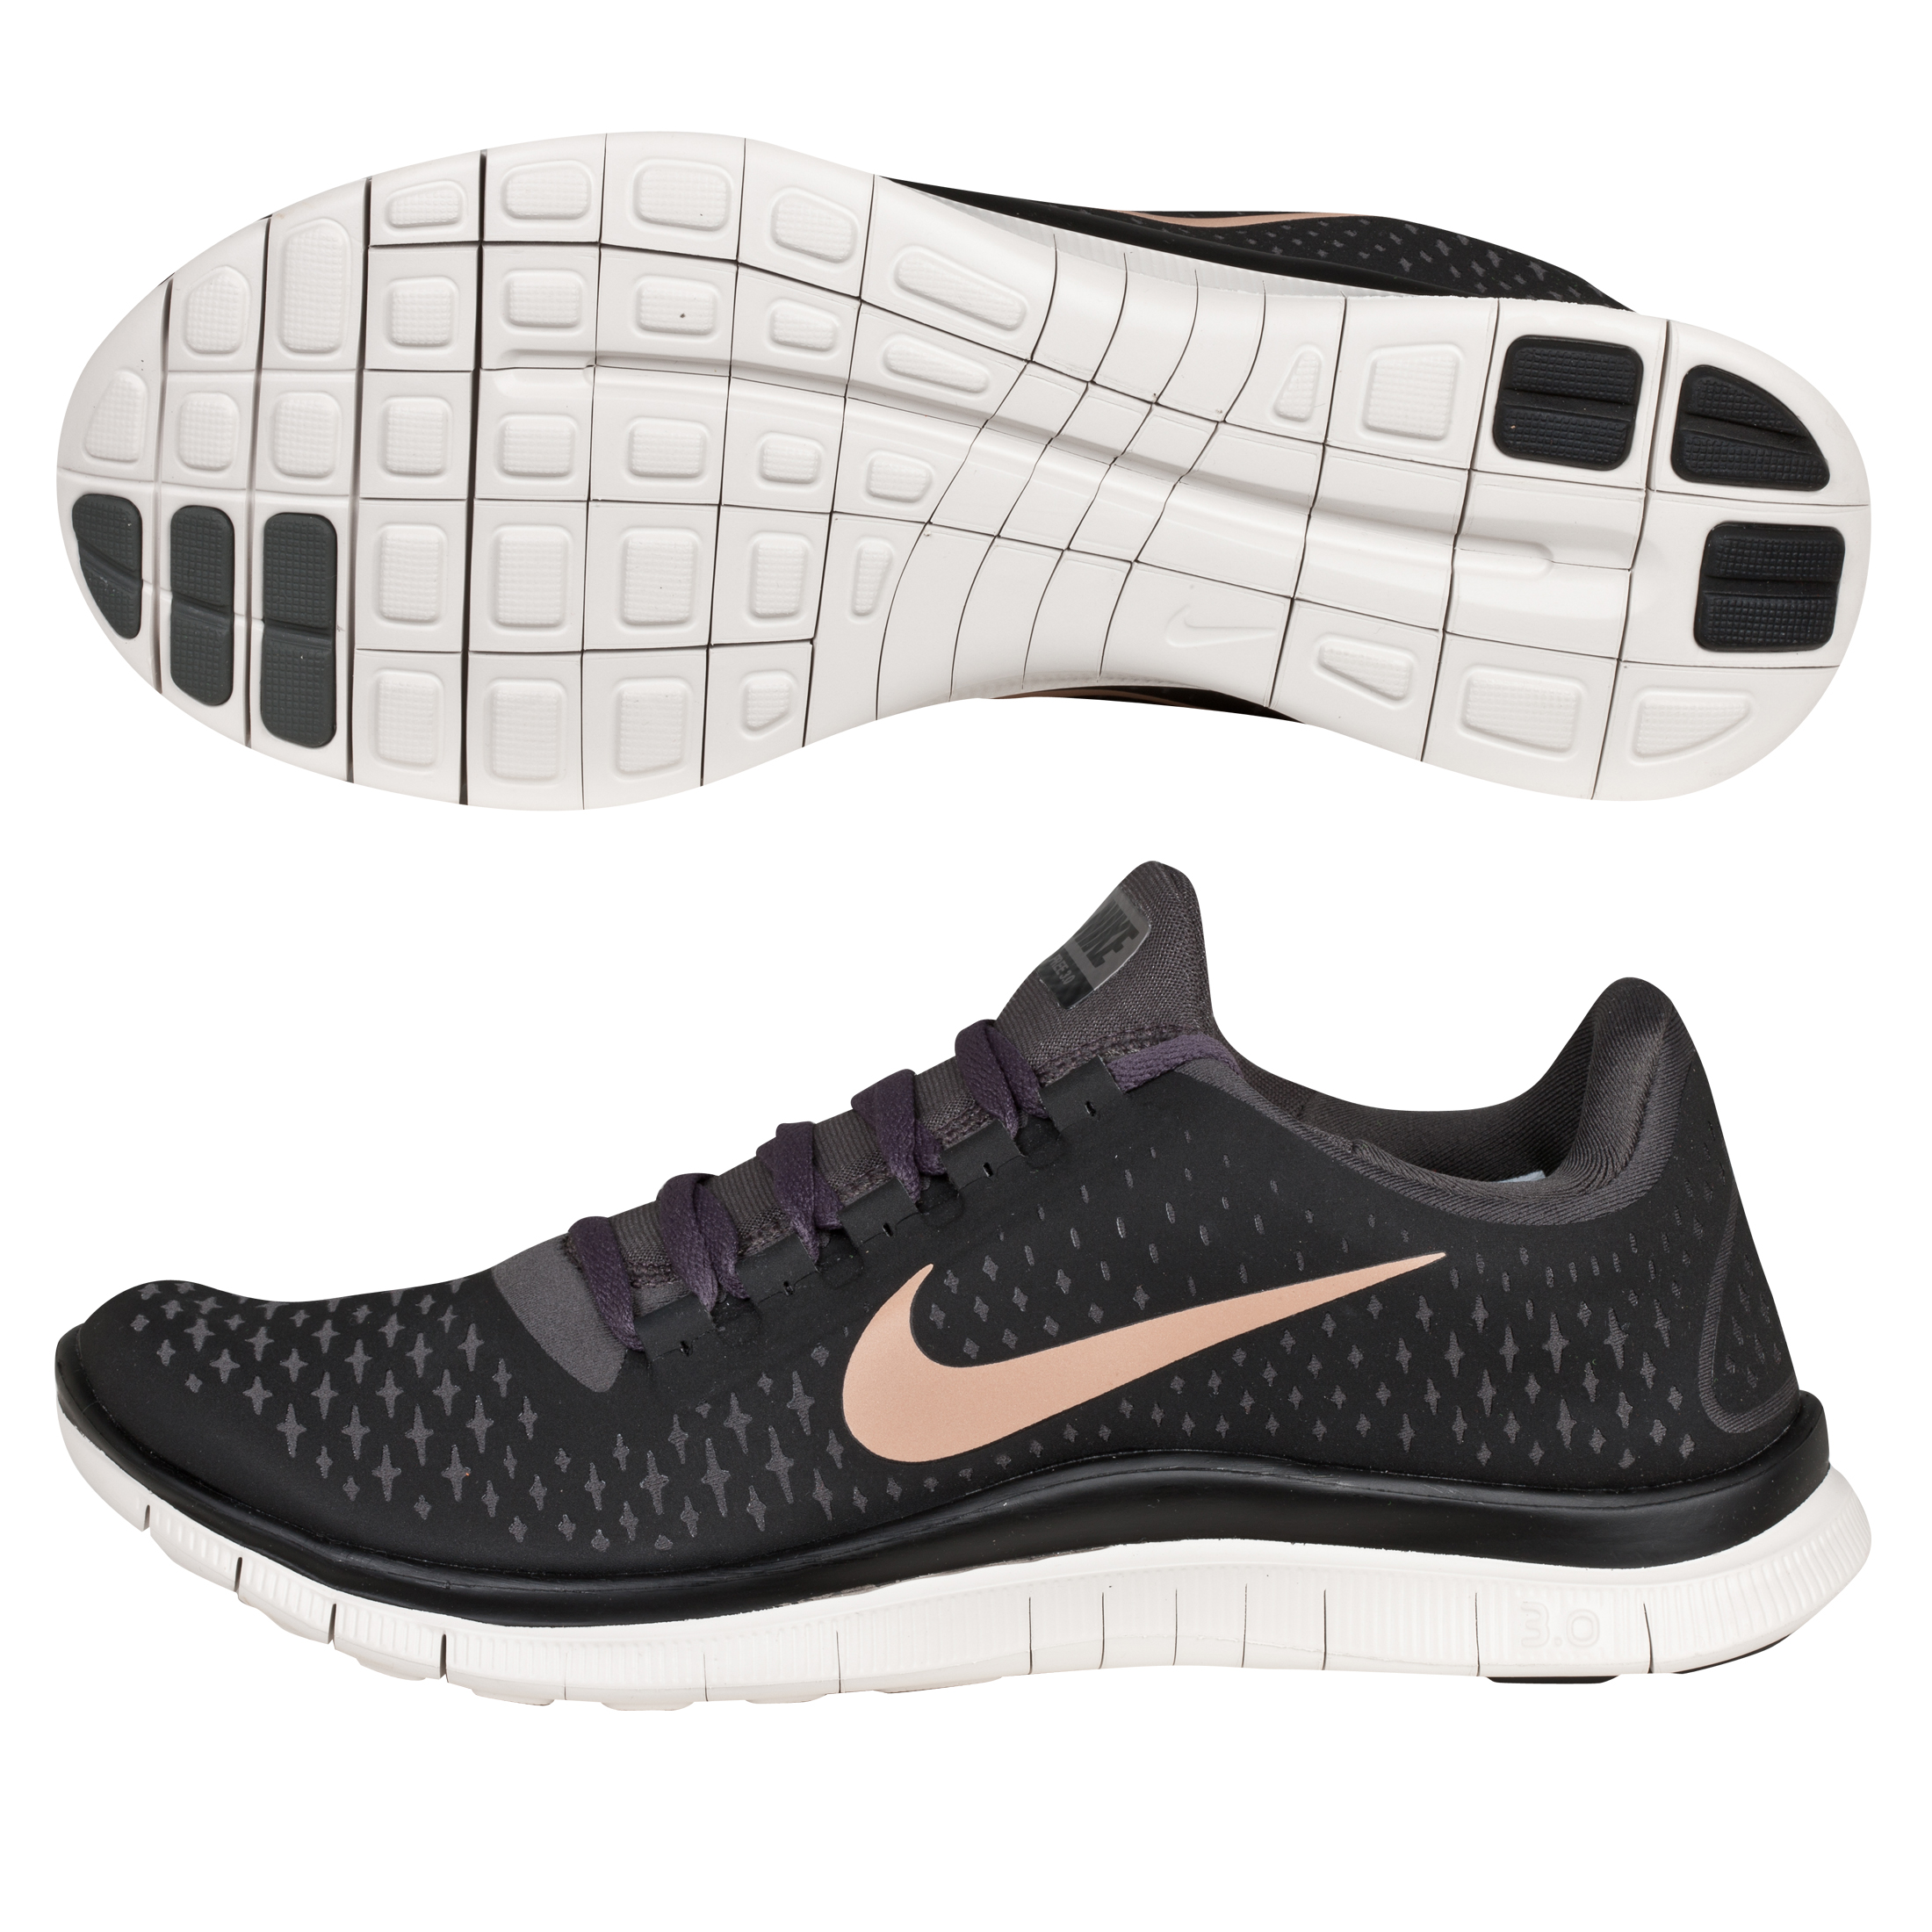 Nike Free 3.0 V4 Barefoot Trainer - Black/Metallic Bronze - Womens